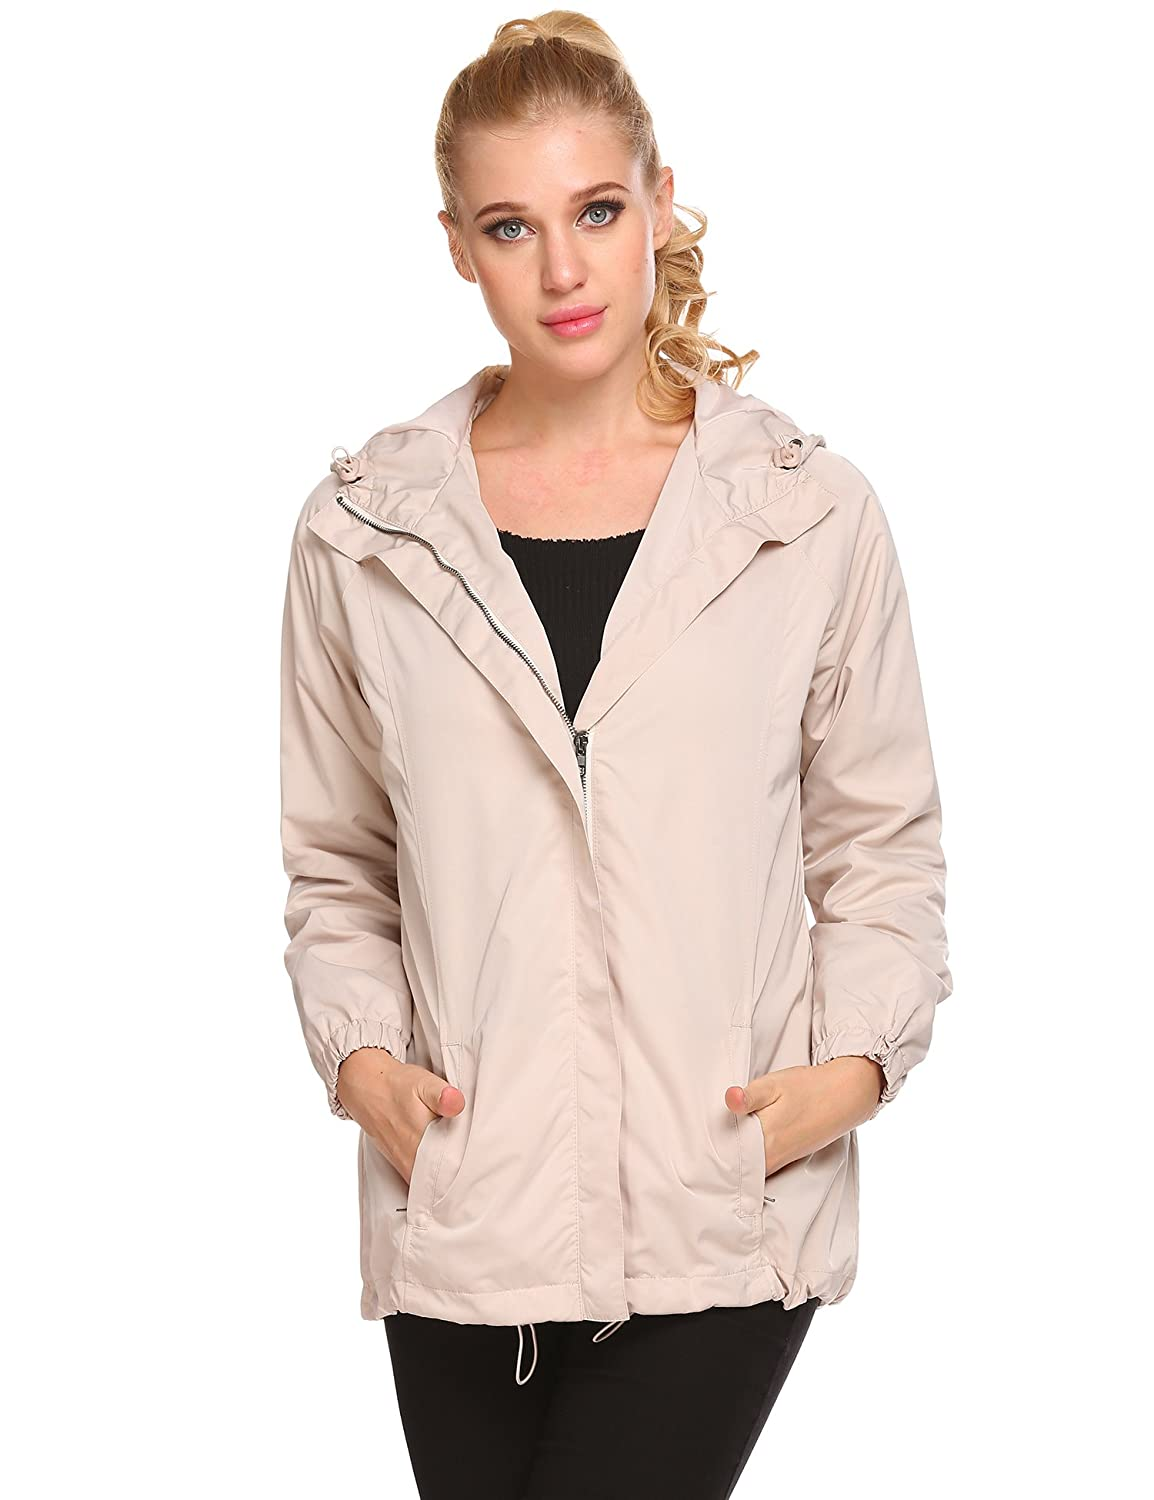 EASTHER Womens Outdoor Waterproof Lightweight Windbreaker Raincoat Hooded Rain Jacket